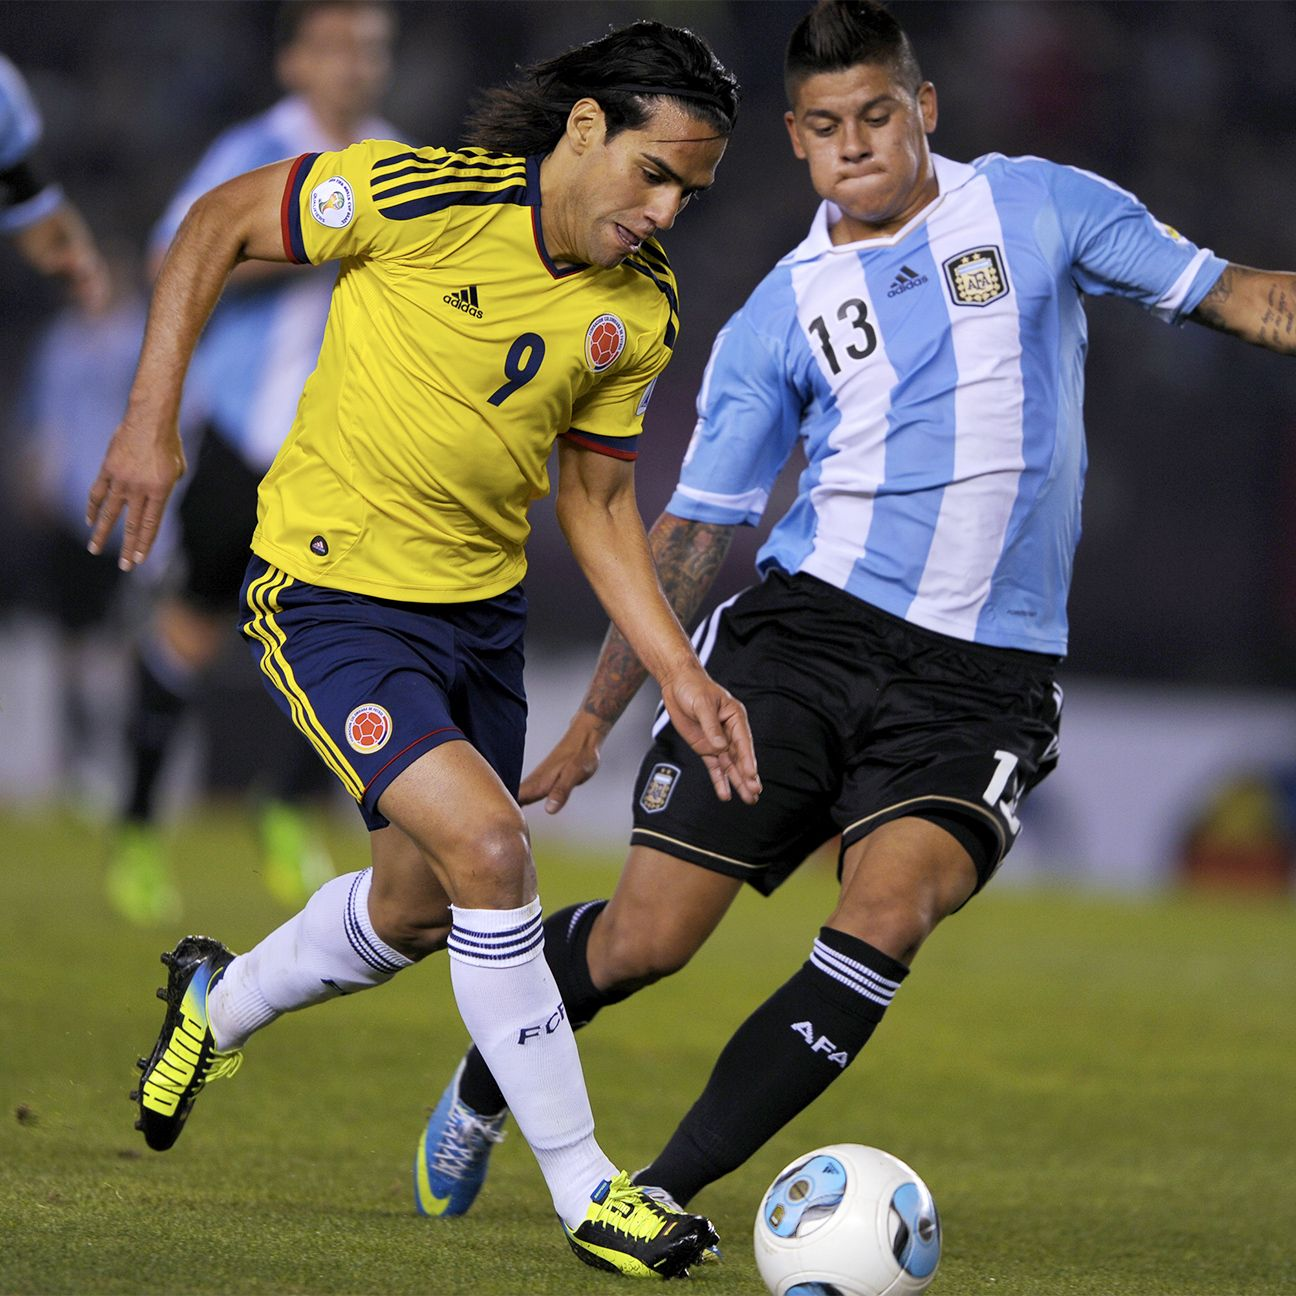 It remains to be seen if the struggling Radamel Falcao will get a crack at starting against Argentina on Friday.